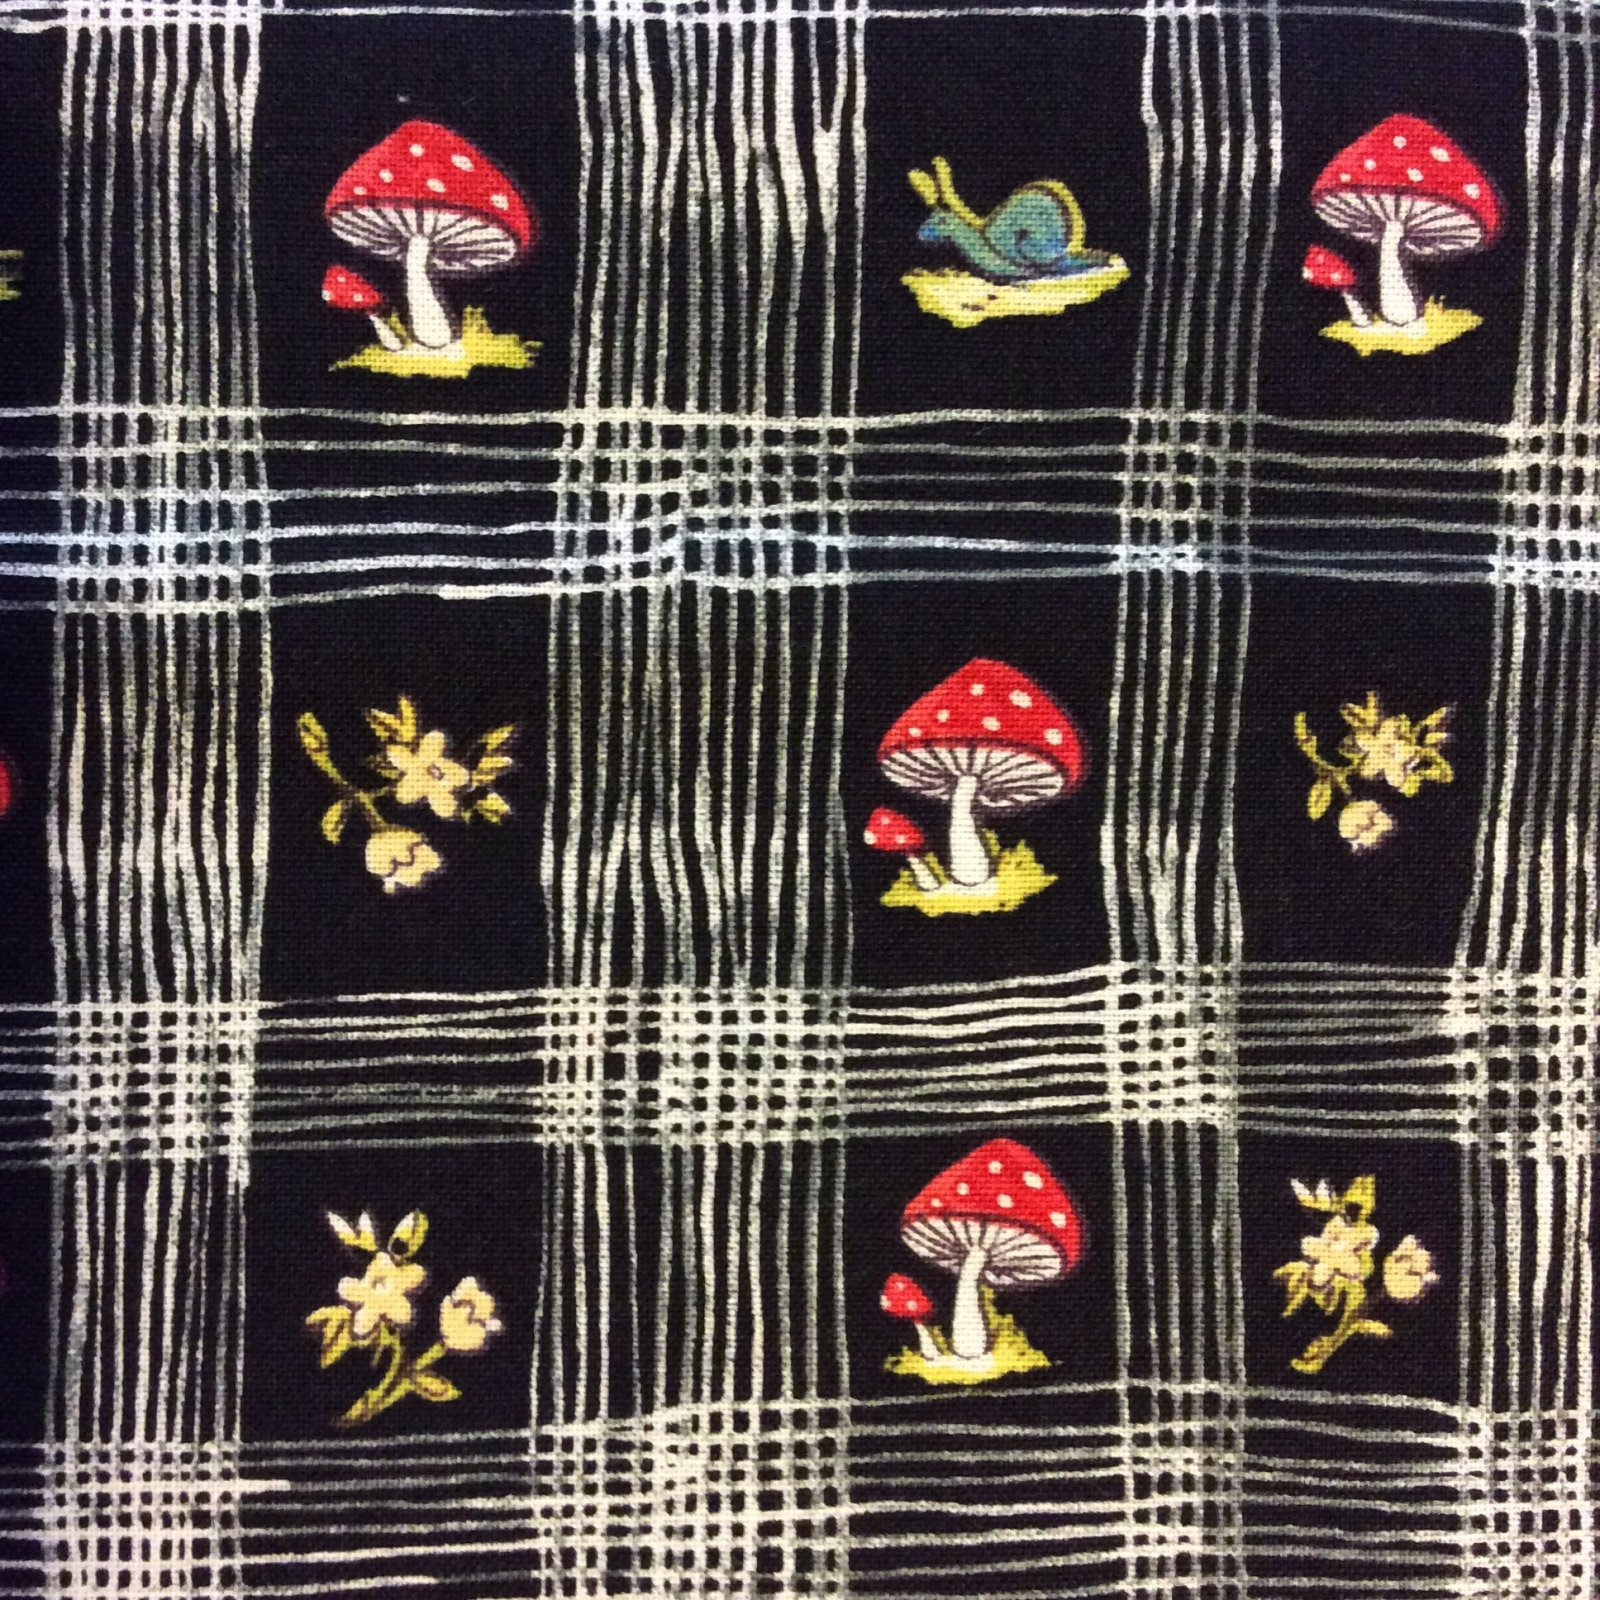 Mushrooms French Country Check European Scandinavia Style Retro Kitchen Farm Cotton Quilt Fabric BL13